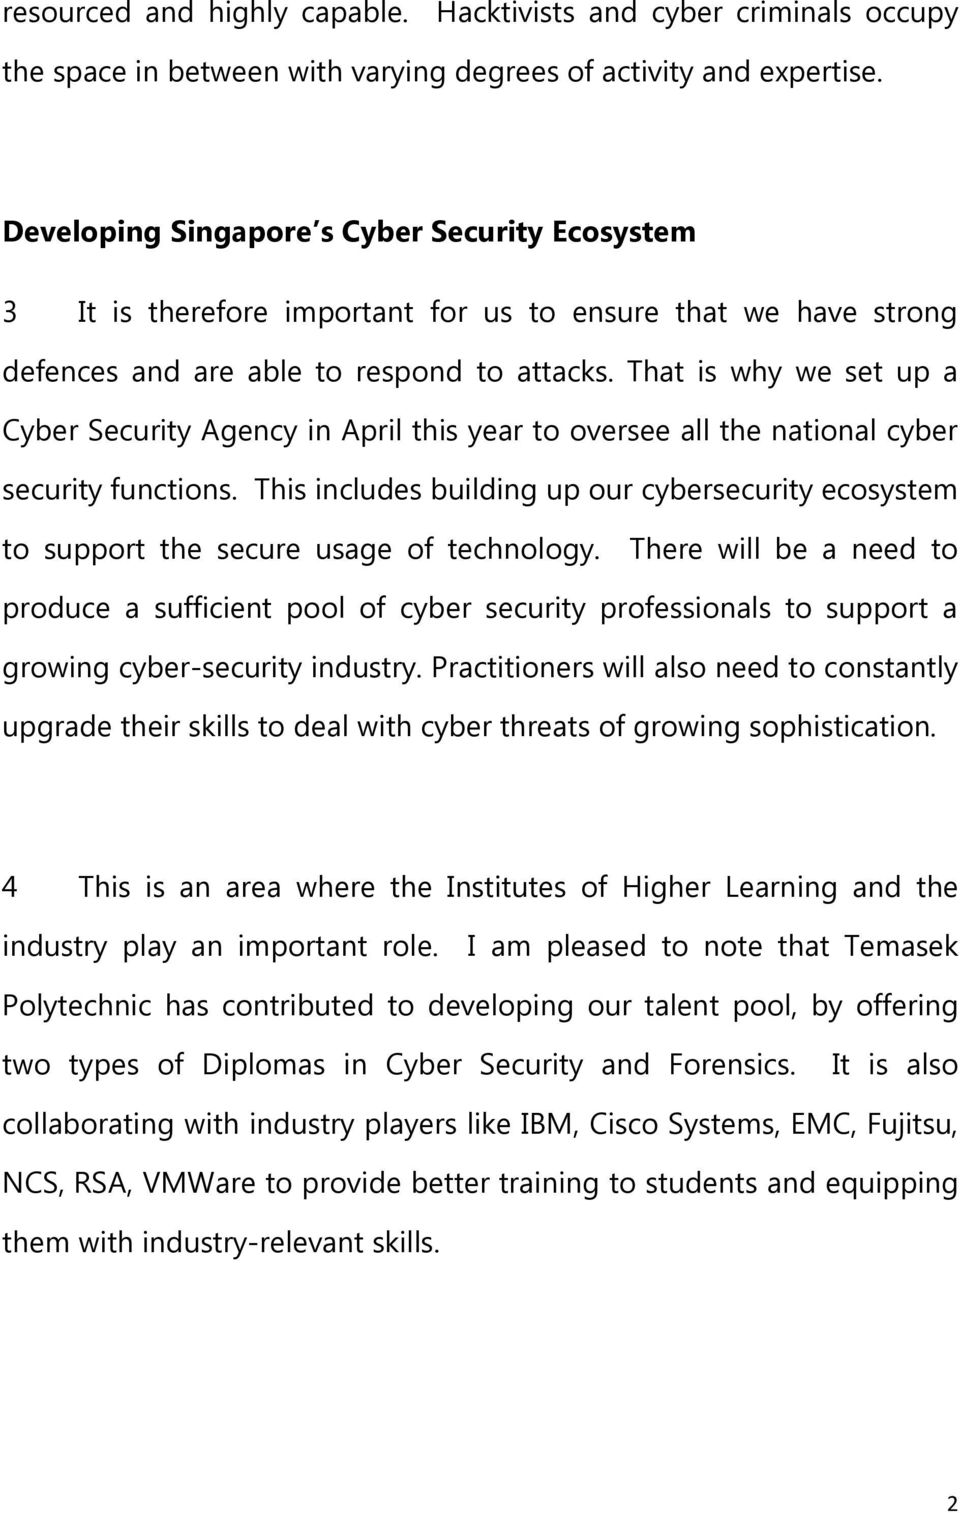 That is why we set up a Cyber Security Agency in April this year to oversee all the national cyber security functions.